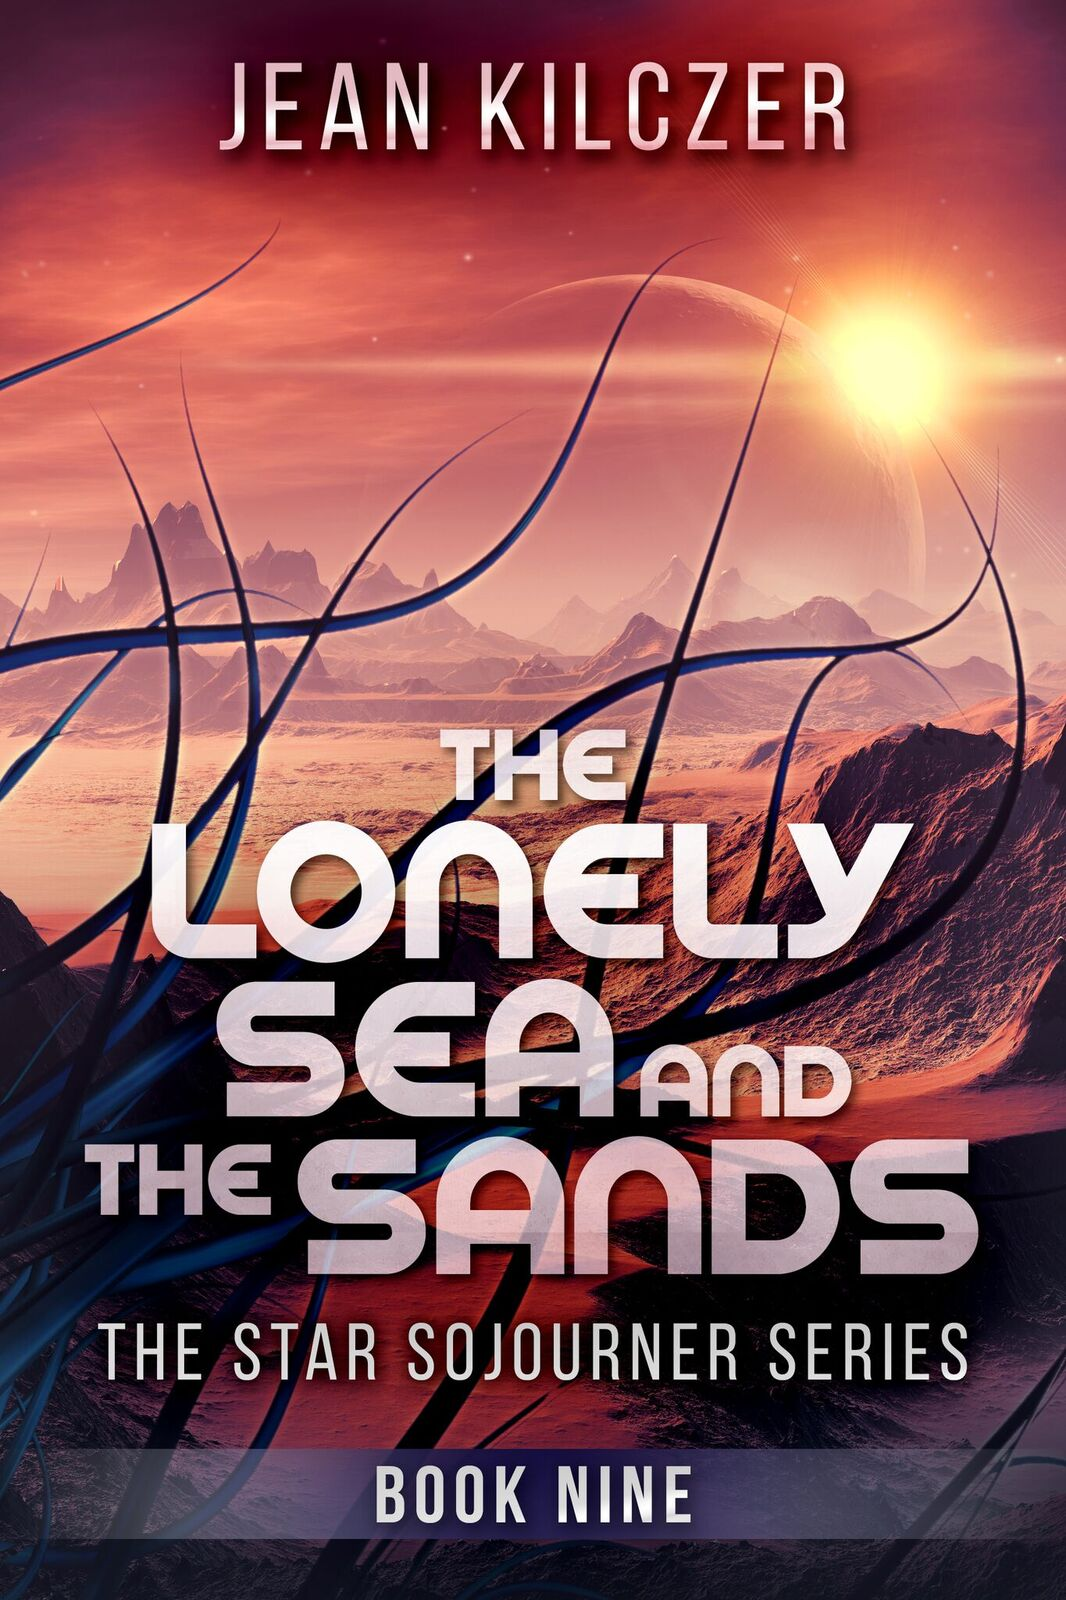 The lonely sea and the sands